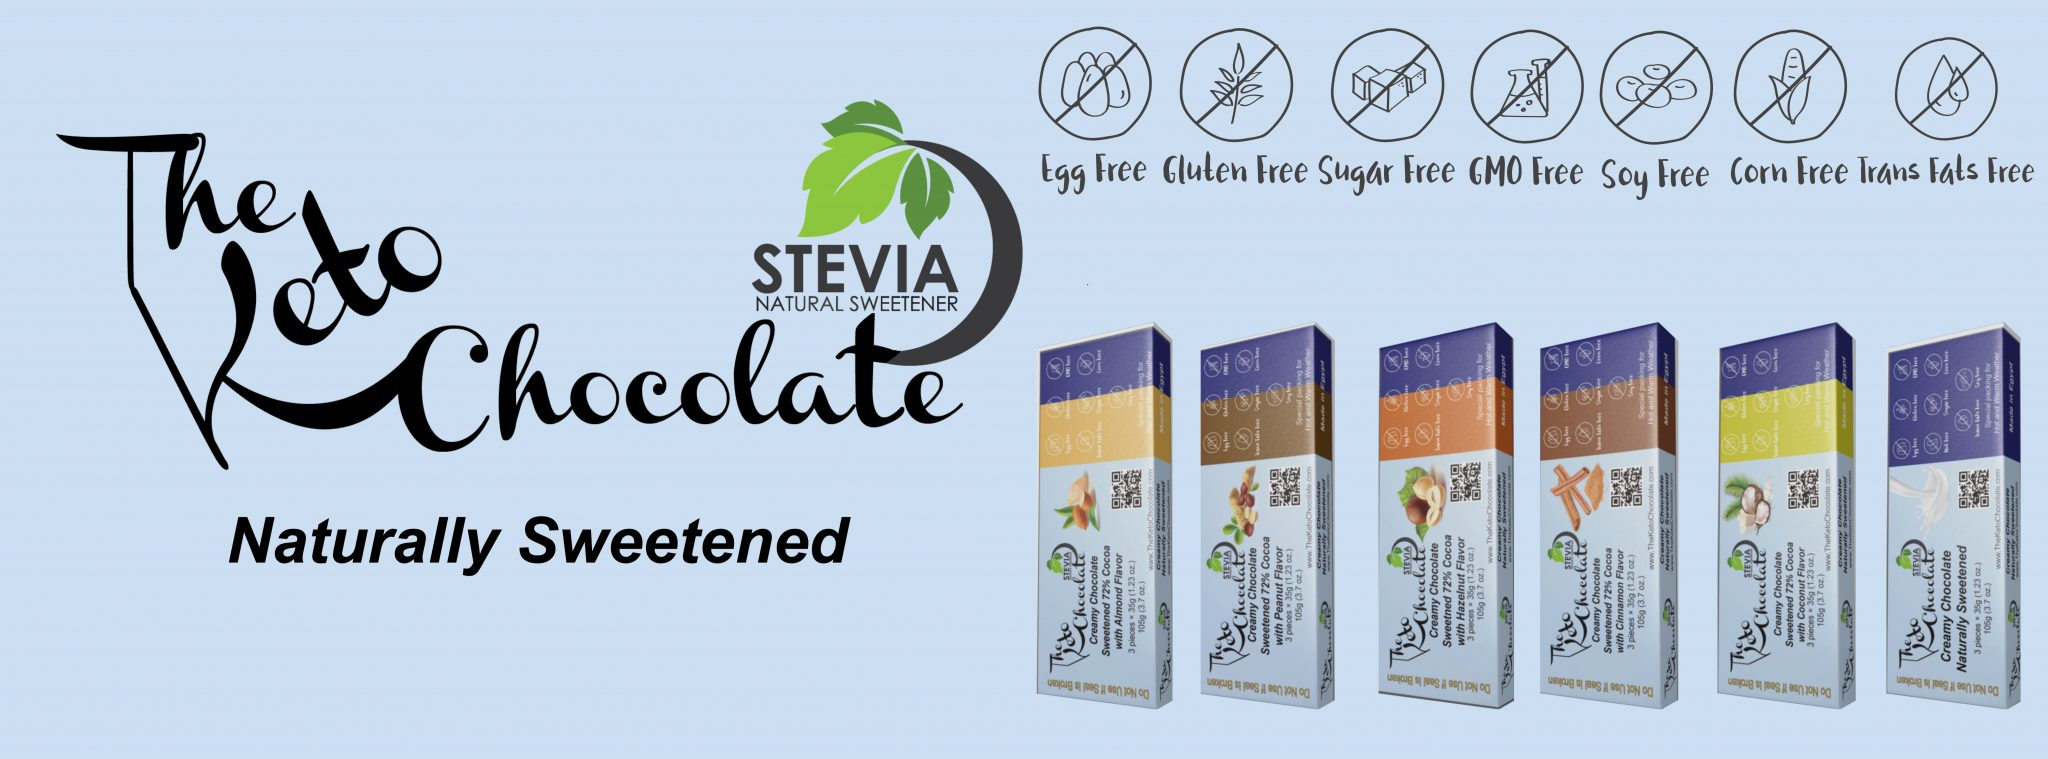 All Natural Ingredients Creamy Chocolate